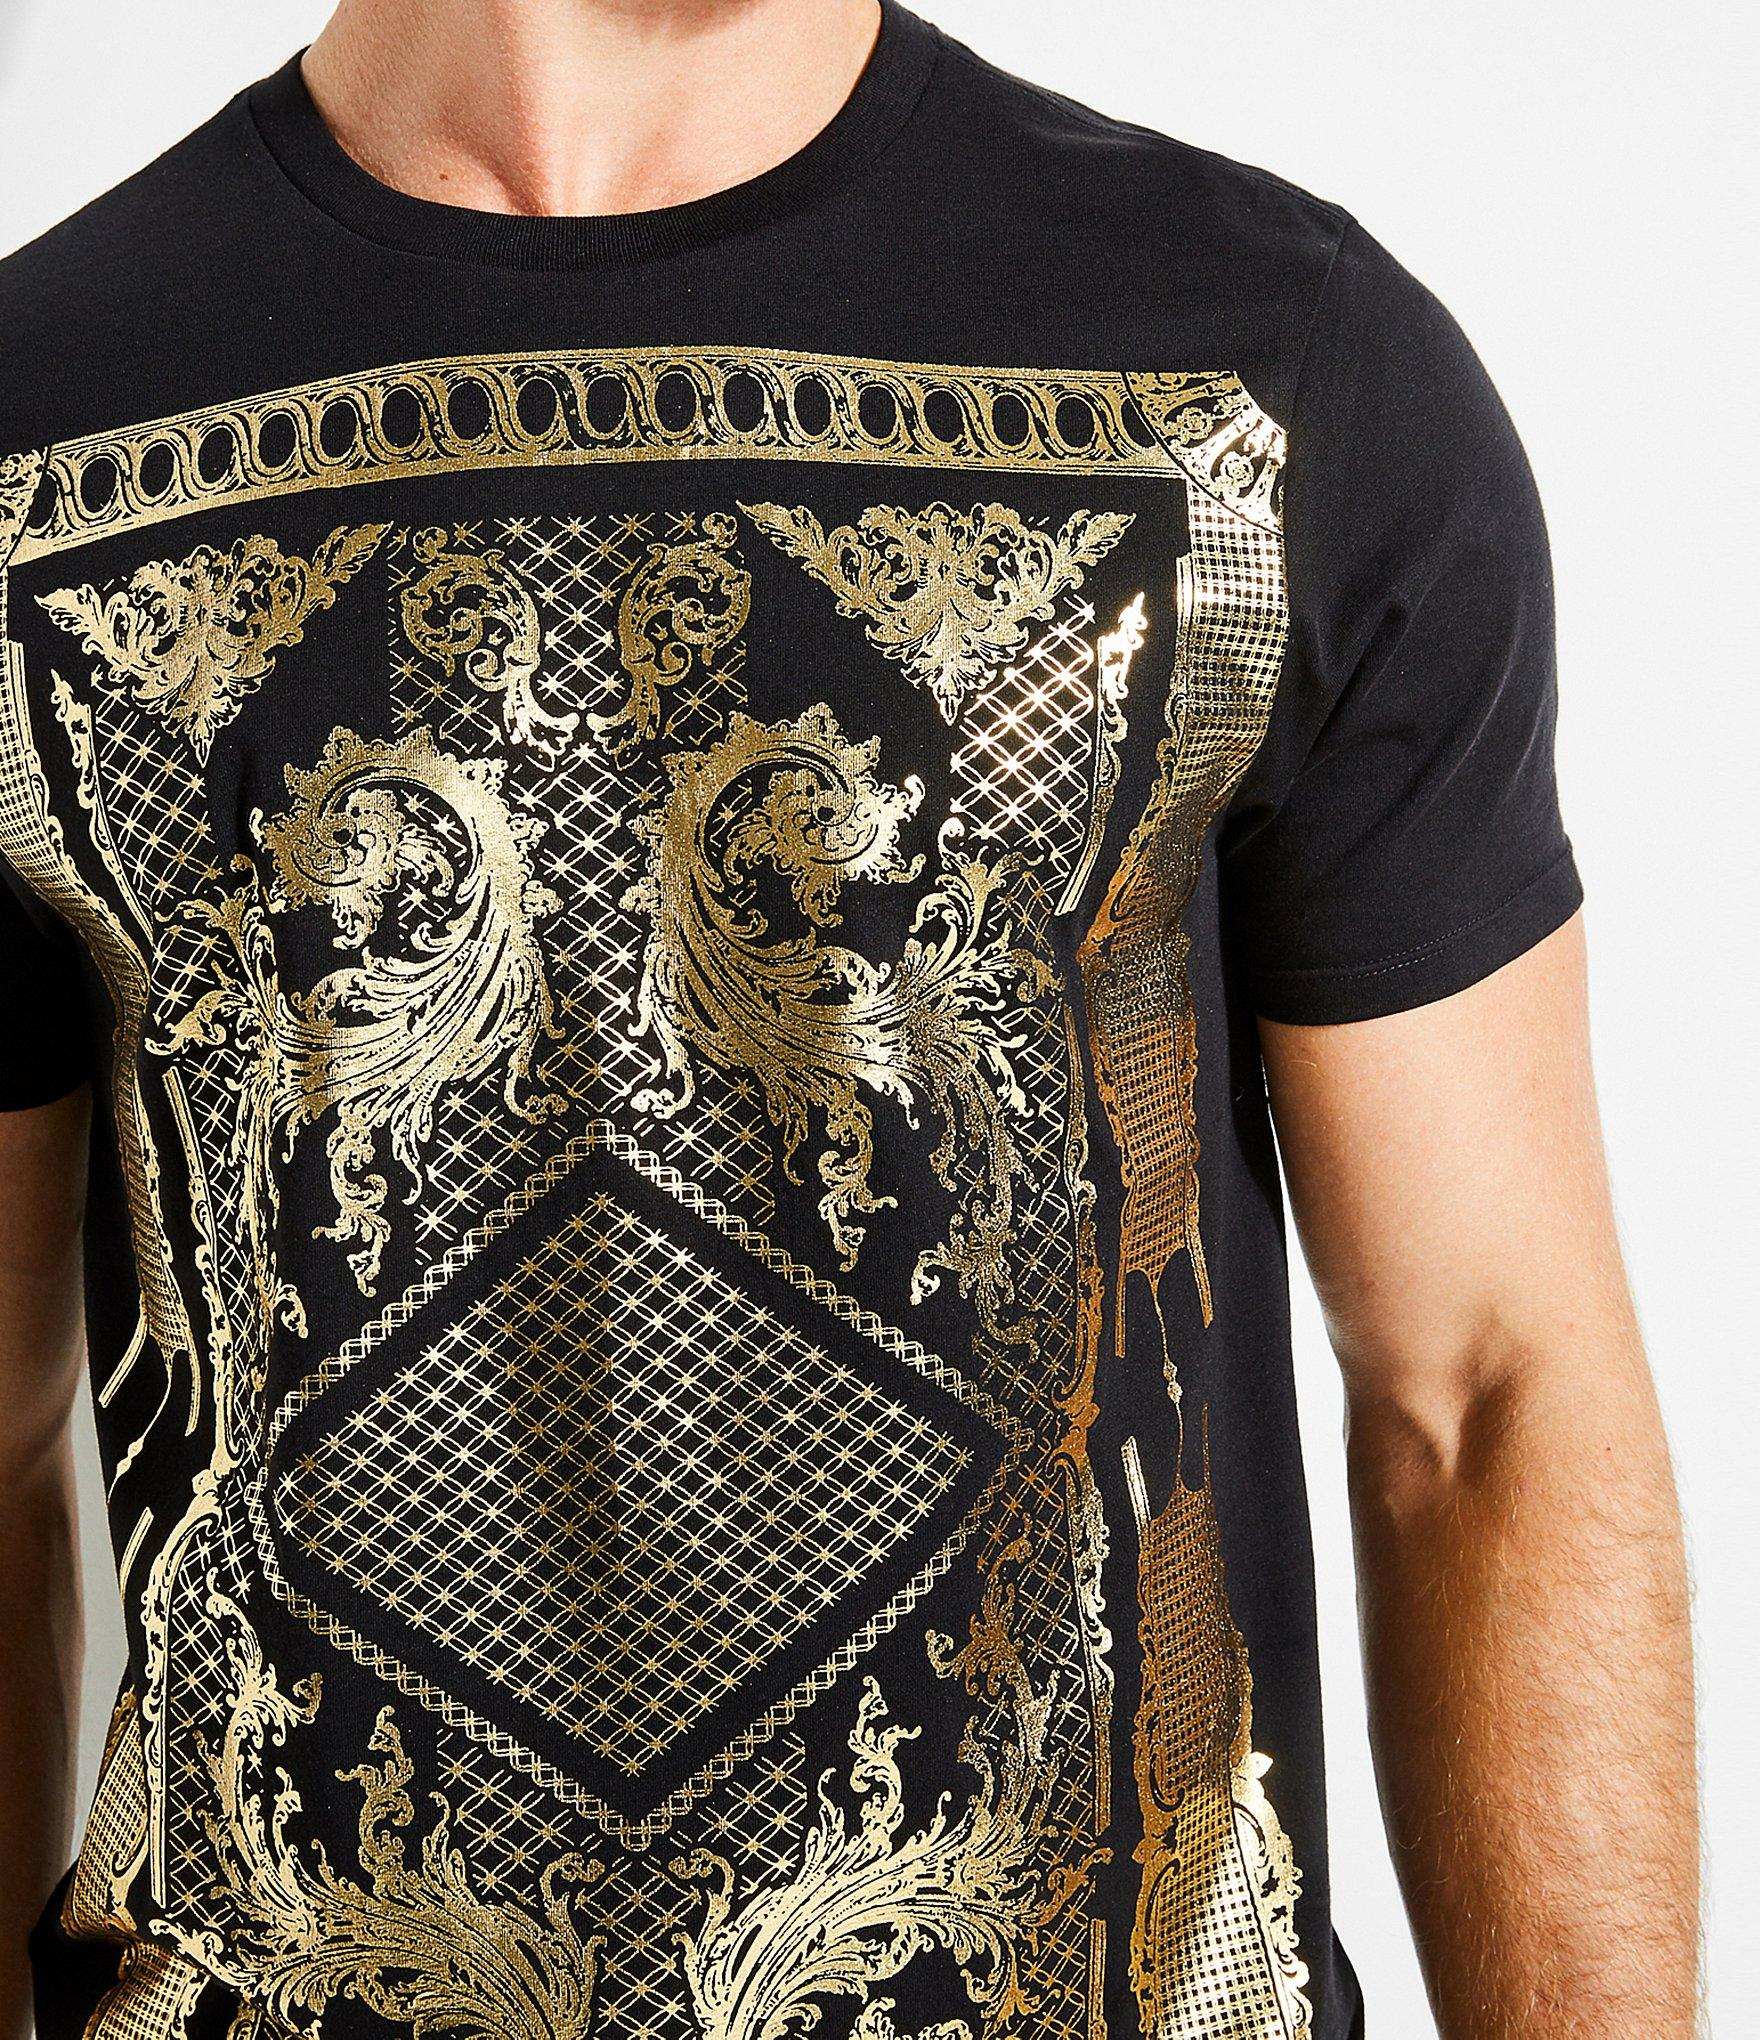 865f338c0a Guess - Black Short-sleeve Victorian Foiled Graphic Crew T-shirt for Men -.  View fullscreen